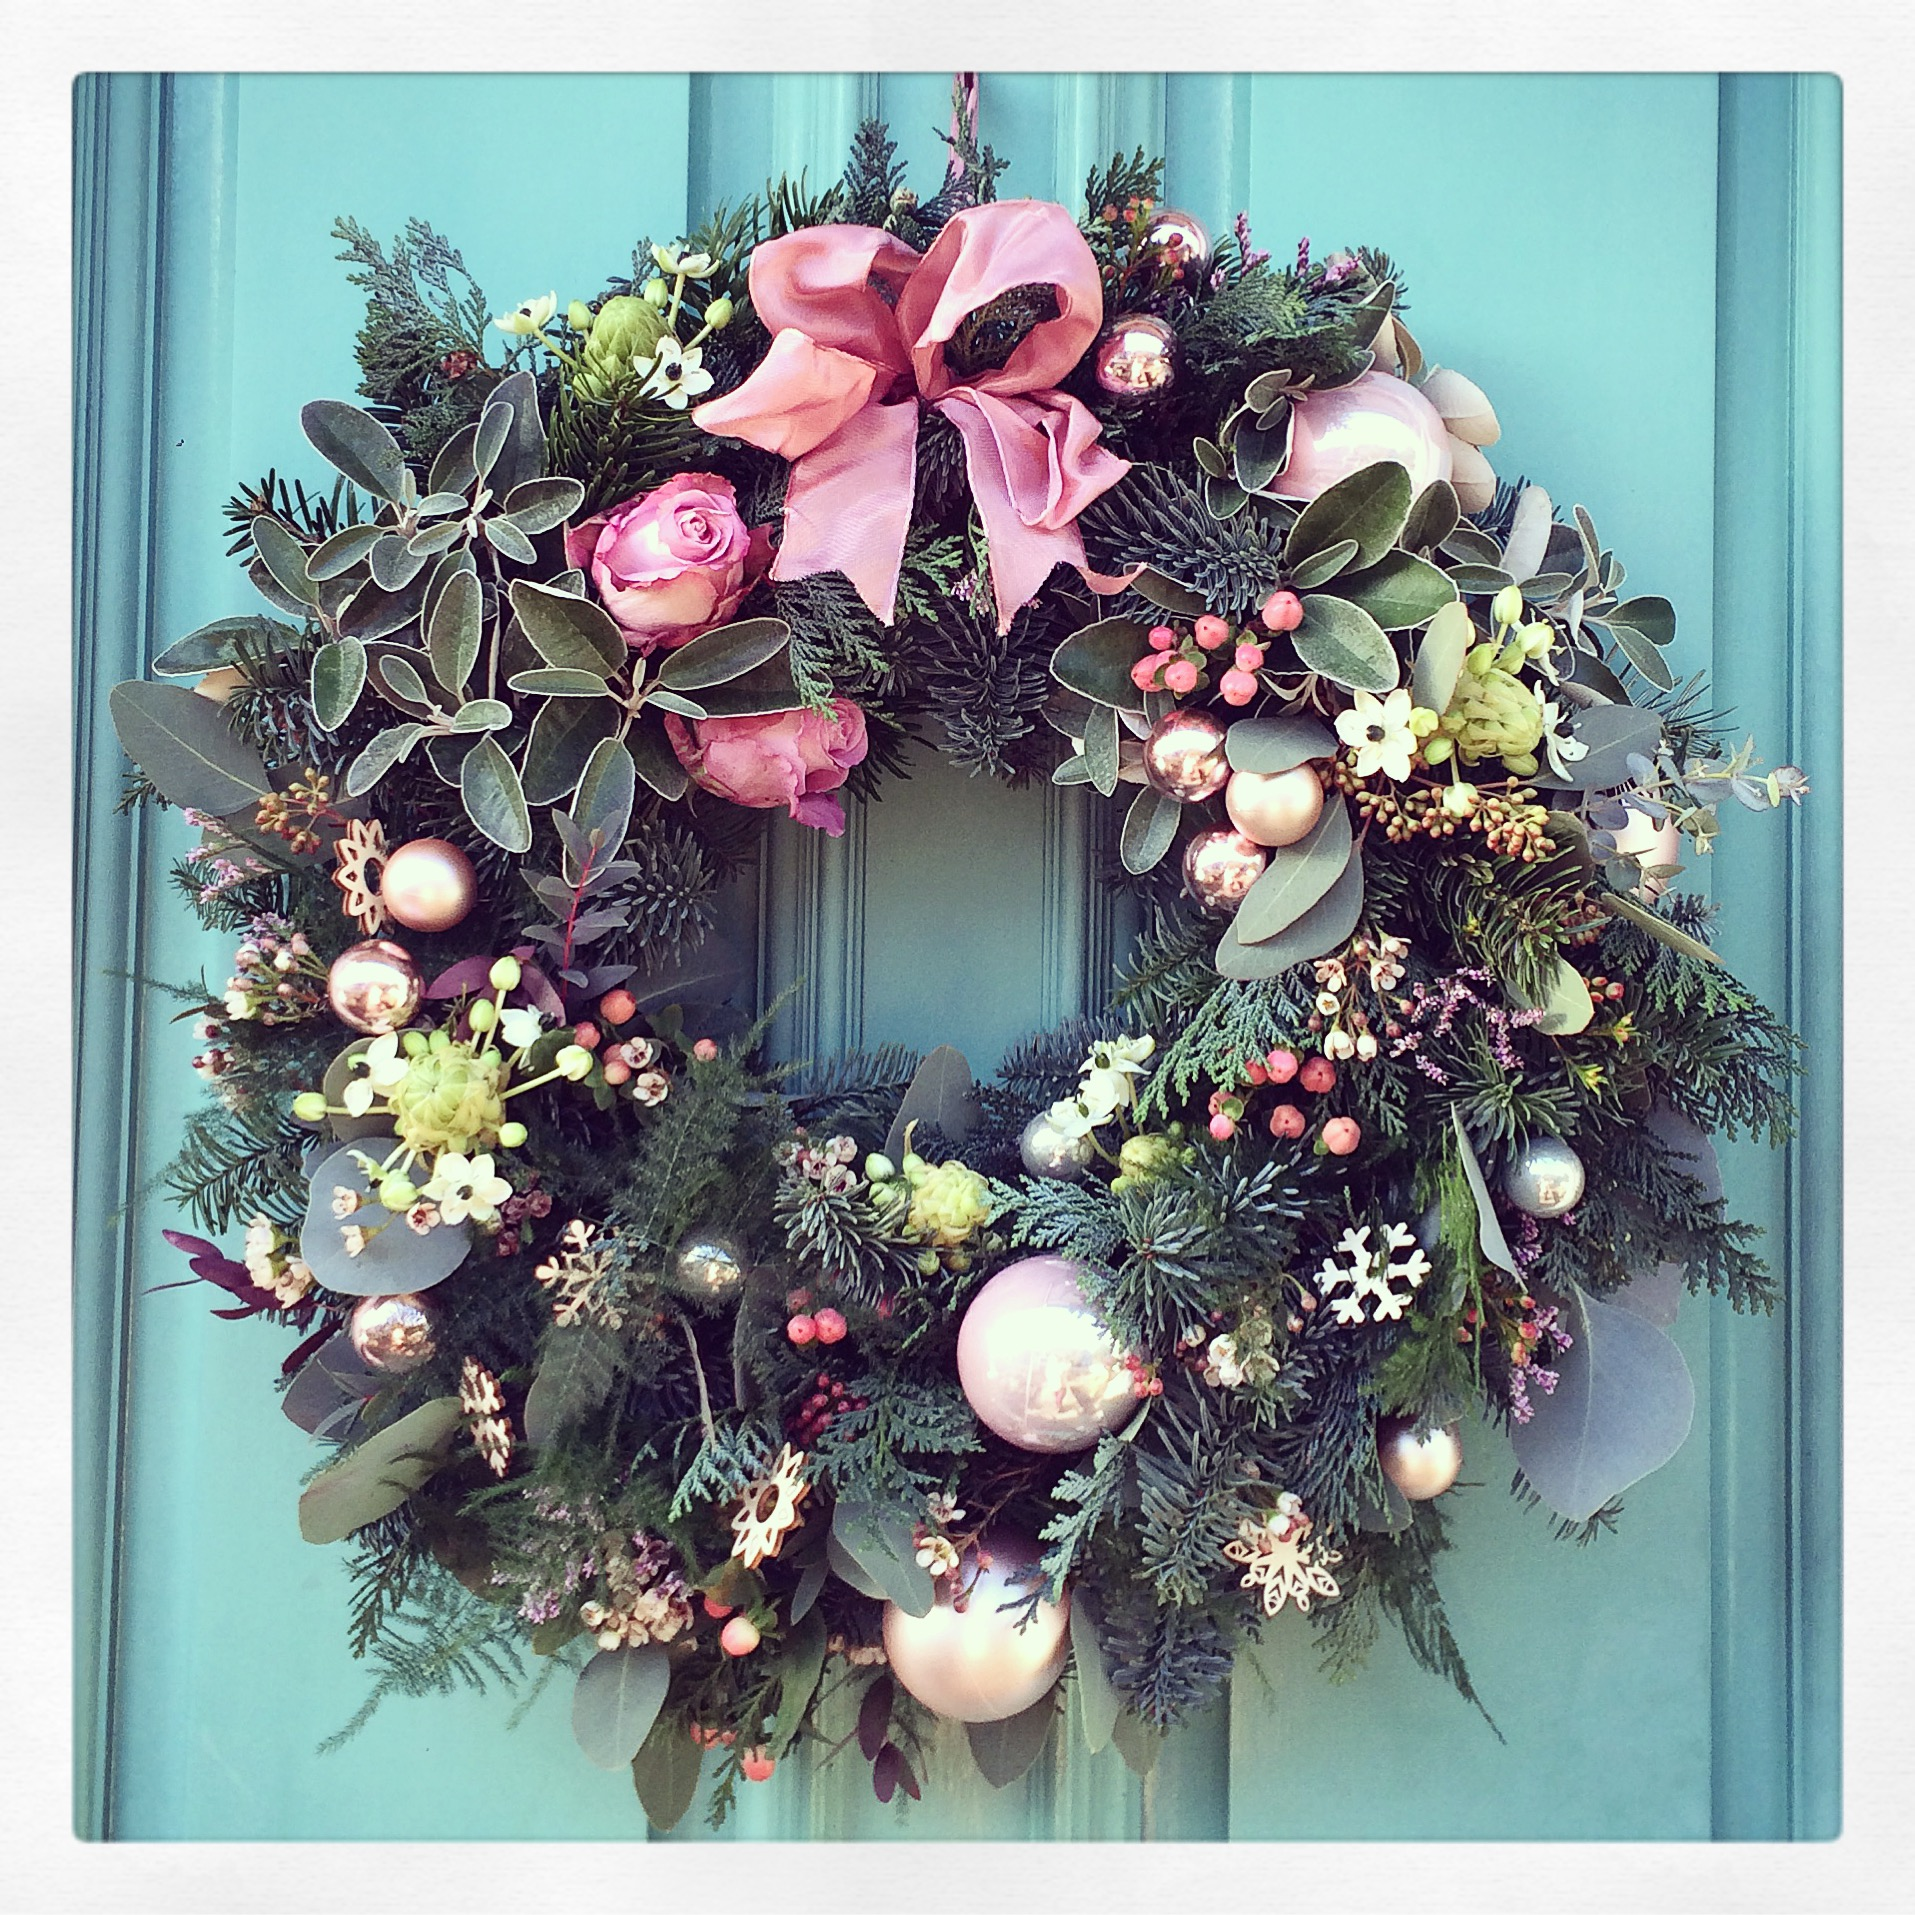 Wedding Flowers Keighley: Order Your Fresh Wreaths Now In Time For Christmas